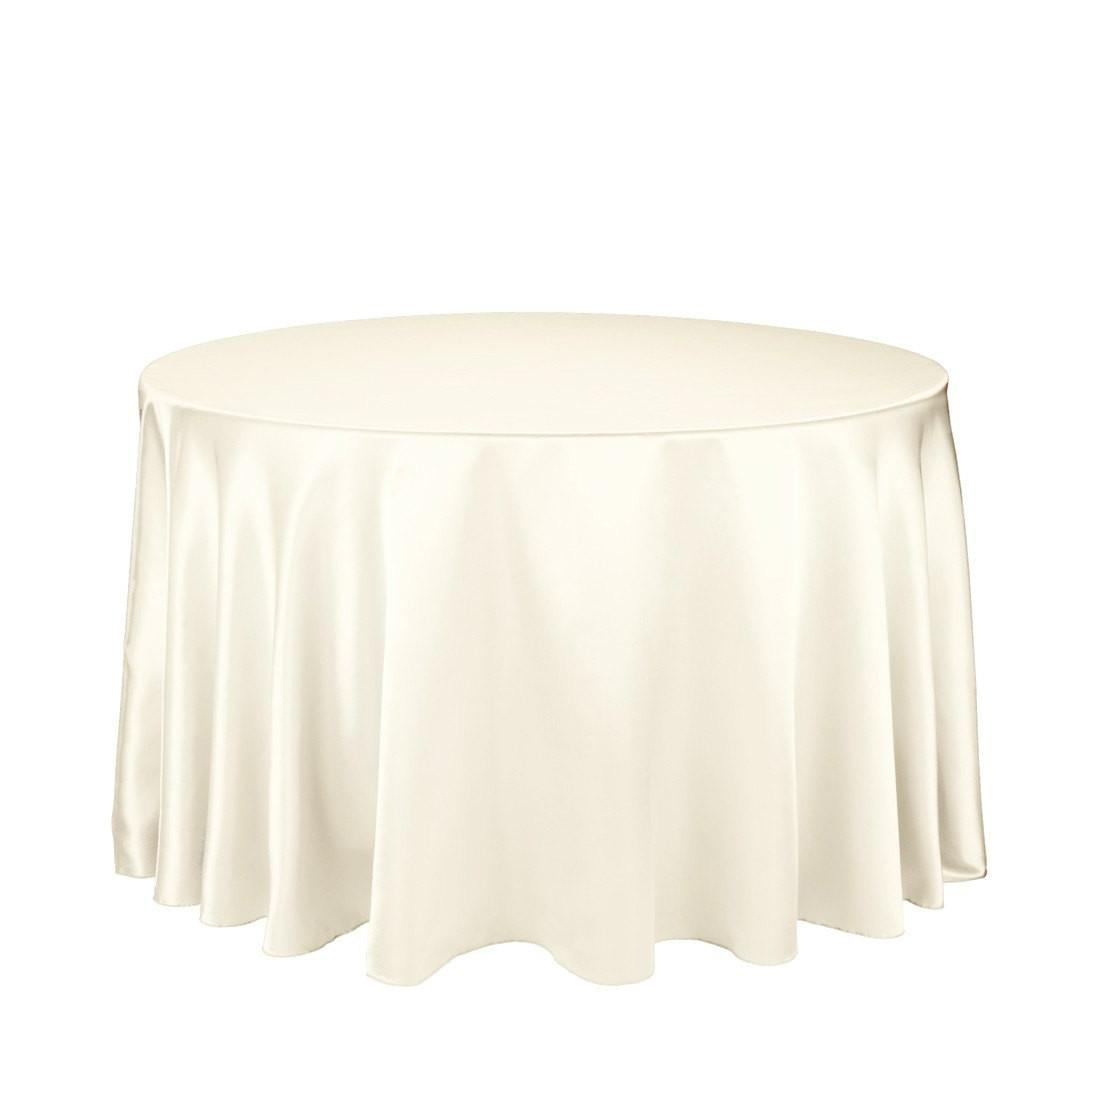 108 Inch Ivory Round Tablecloth Satin Wedding Table Cloths